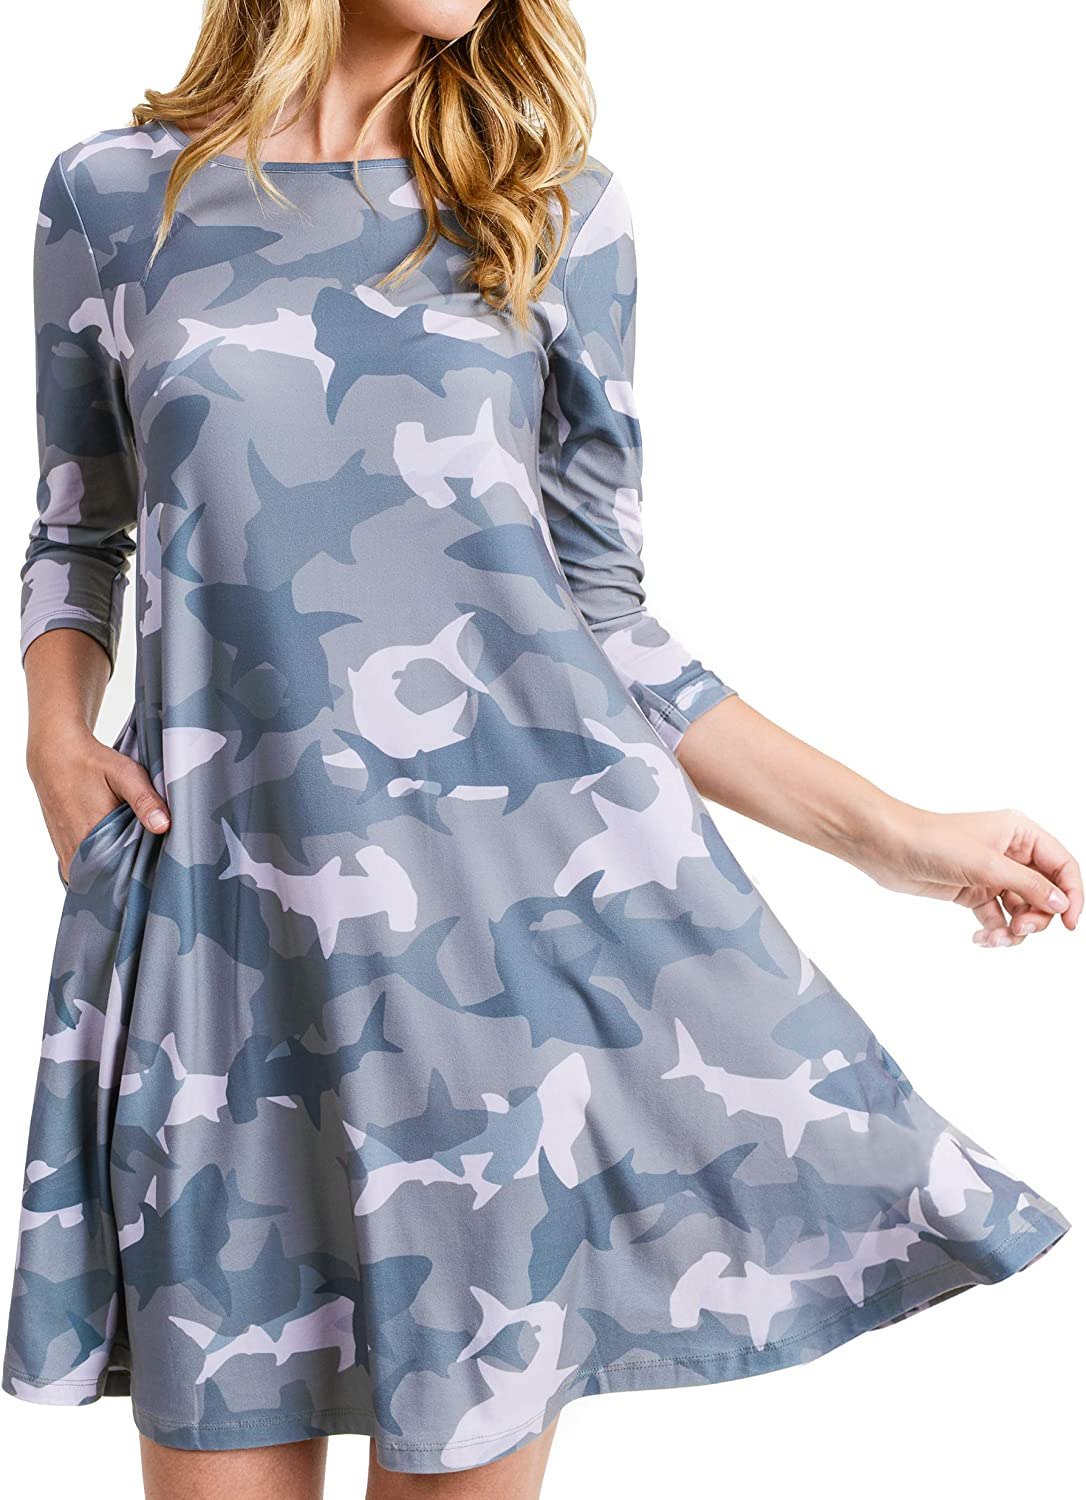 Top 10 Women's Shark Dress